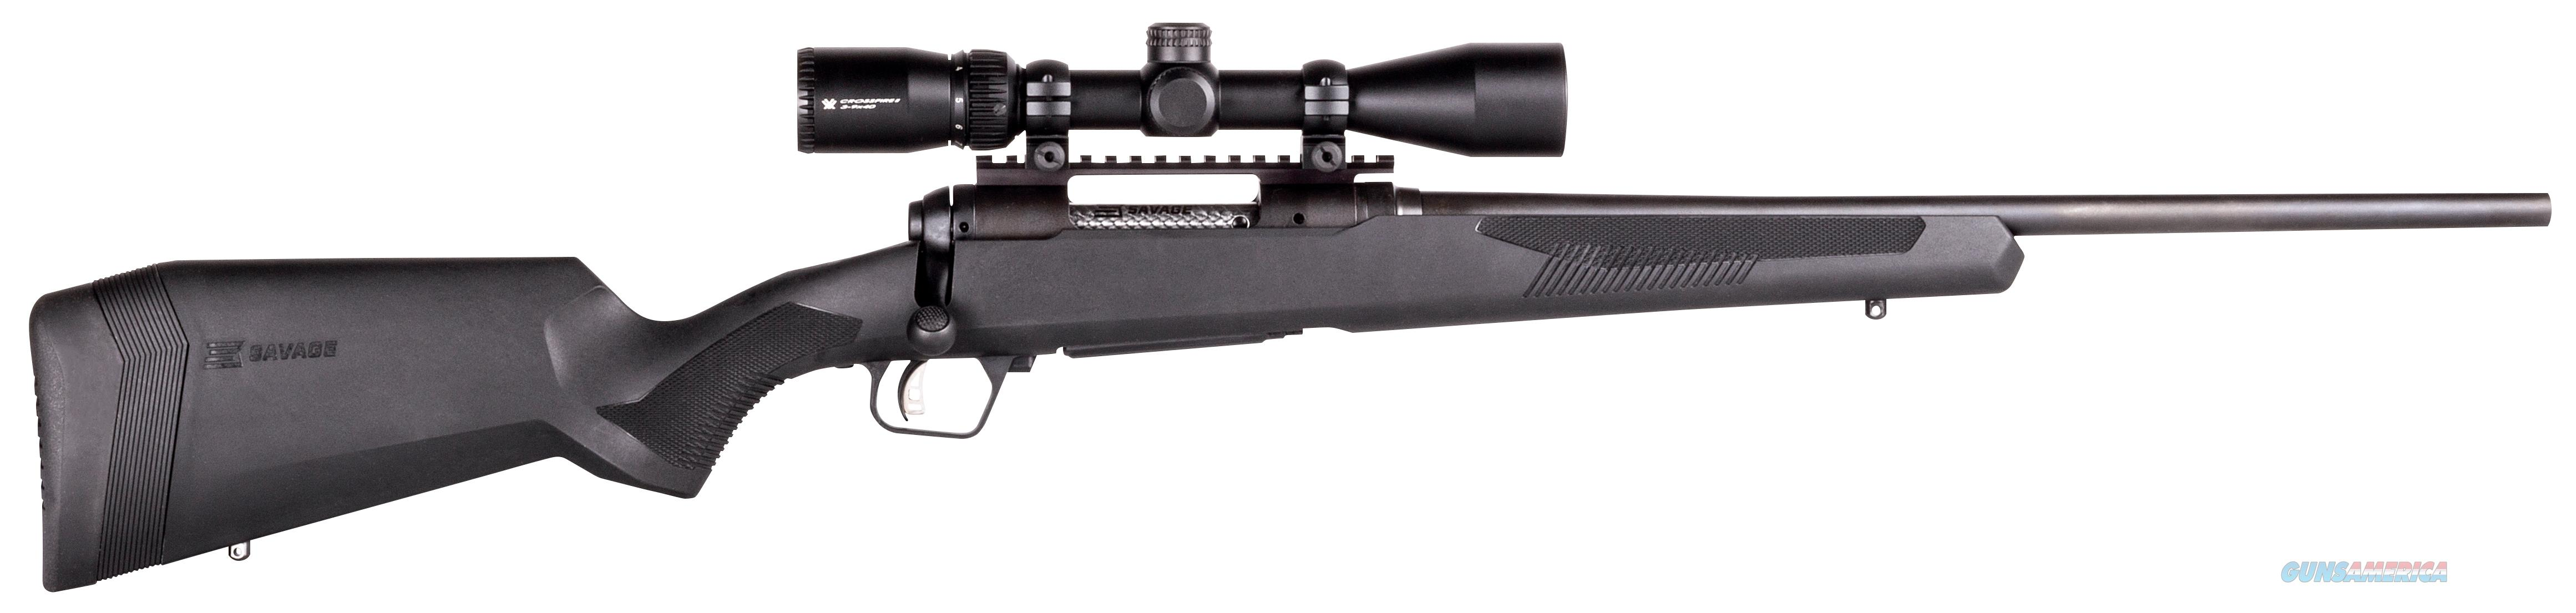 "110 Apex Hunt Xp 308Win 20""Pkg 57307  Guns > Rifles > S Misc Rifles"